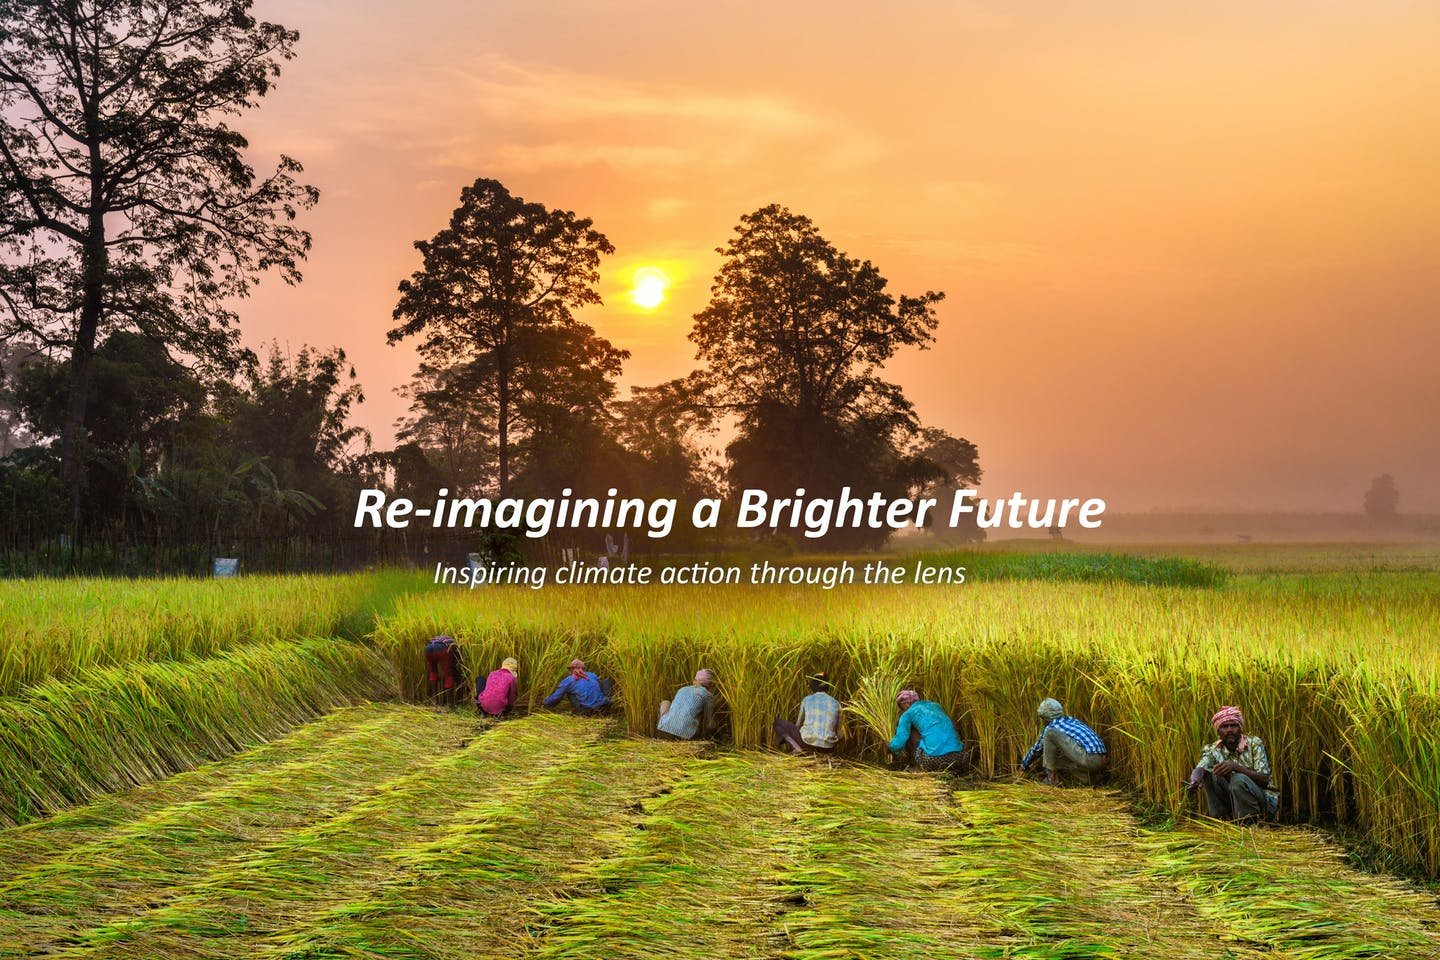 Re-imagining a Brighter Future: A Olam & Eco-Business Photo Challenge